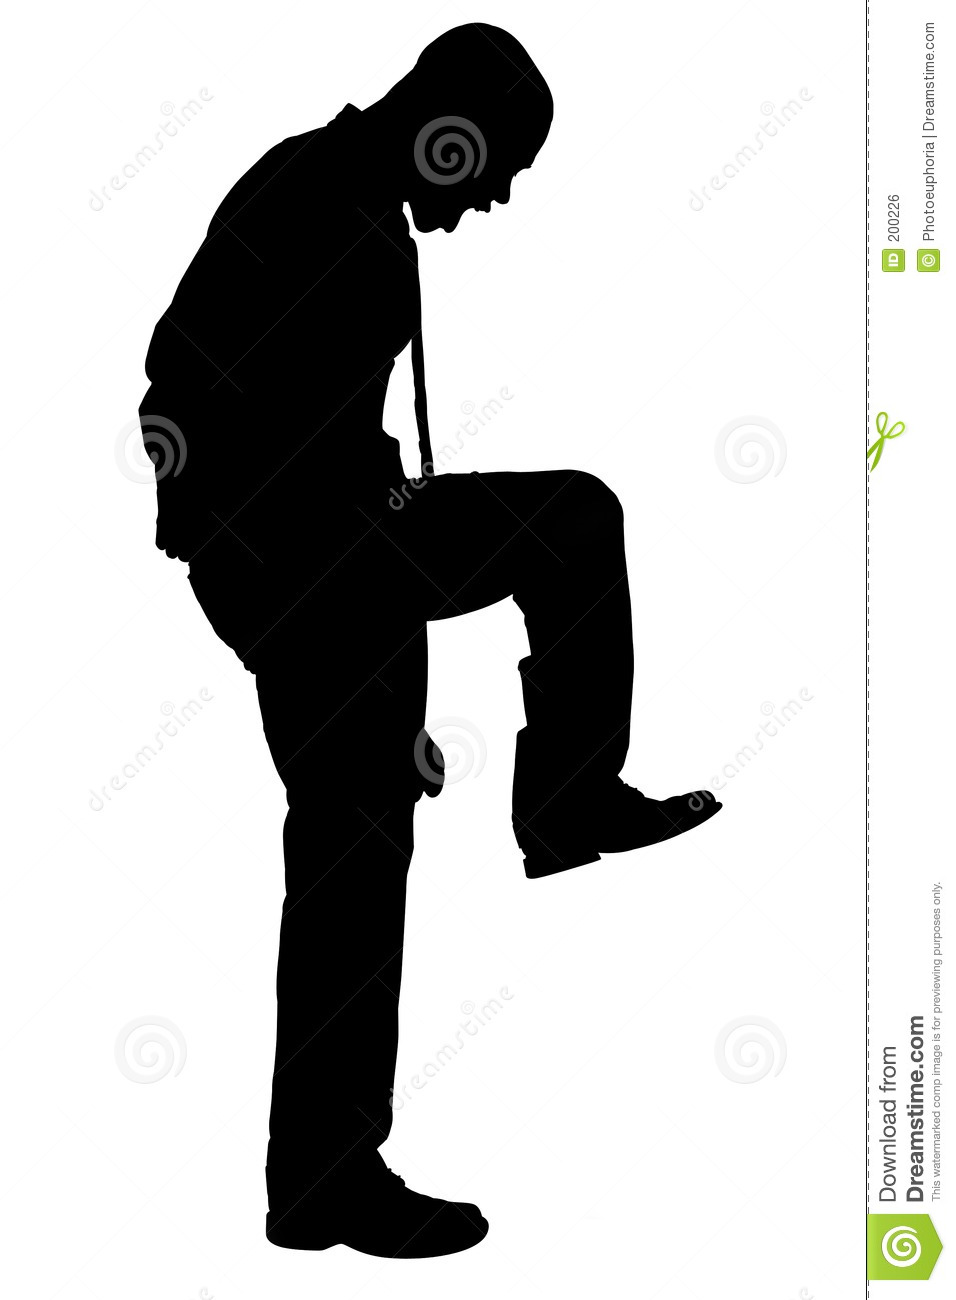 Silhouette With Clipping Path Of Angry Man Stomping Royalty Free Stock ...